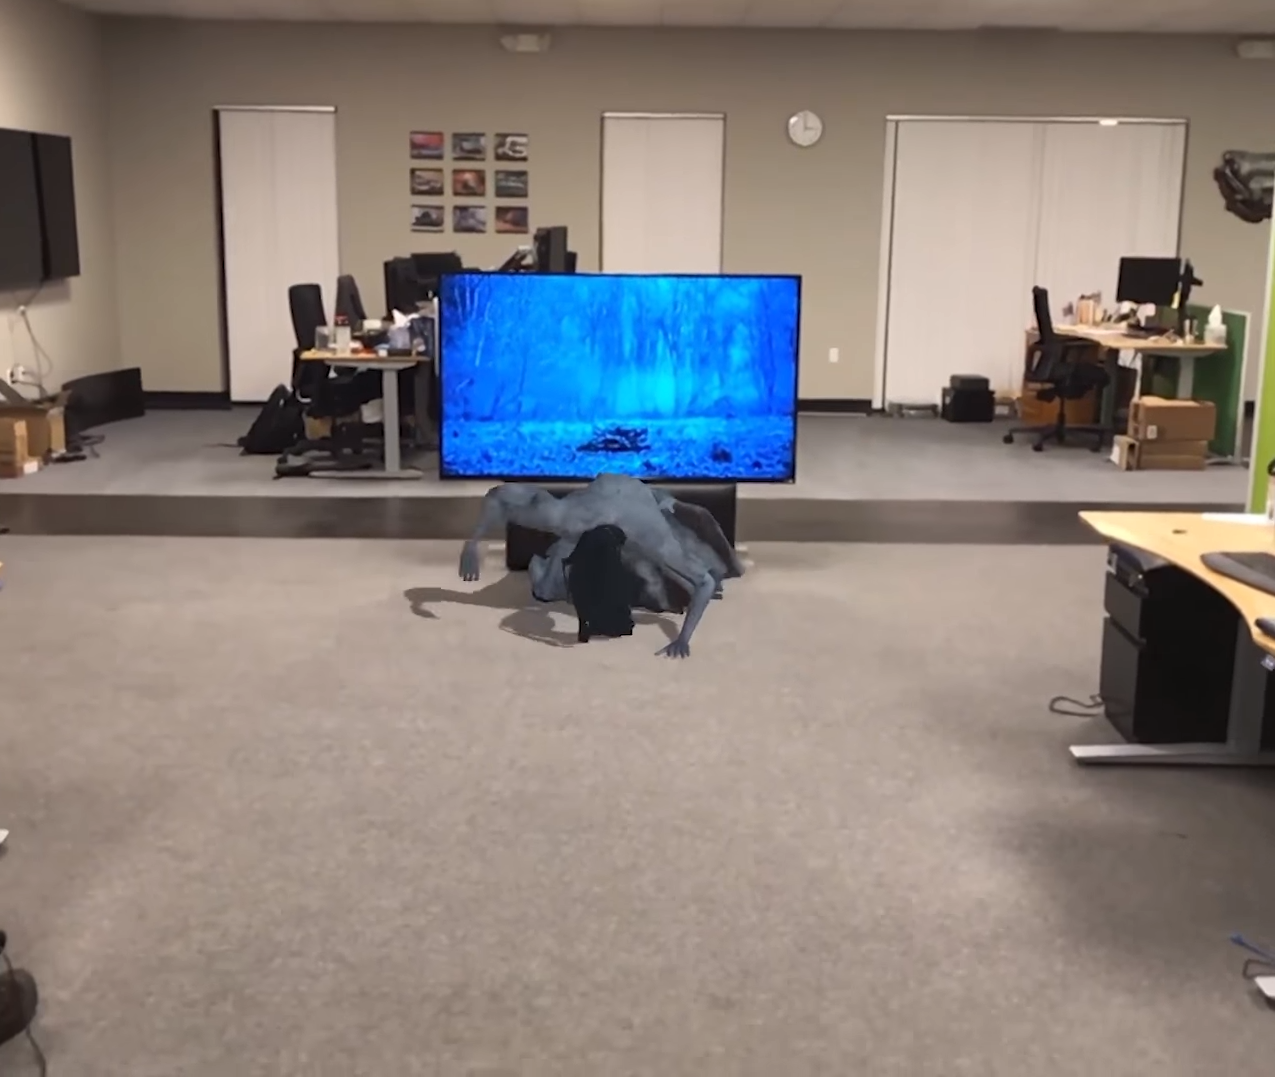 The Ring AR simulation